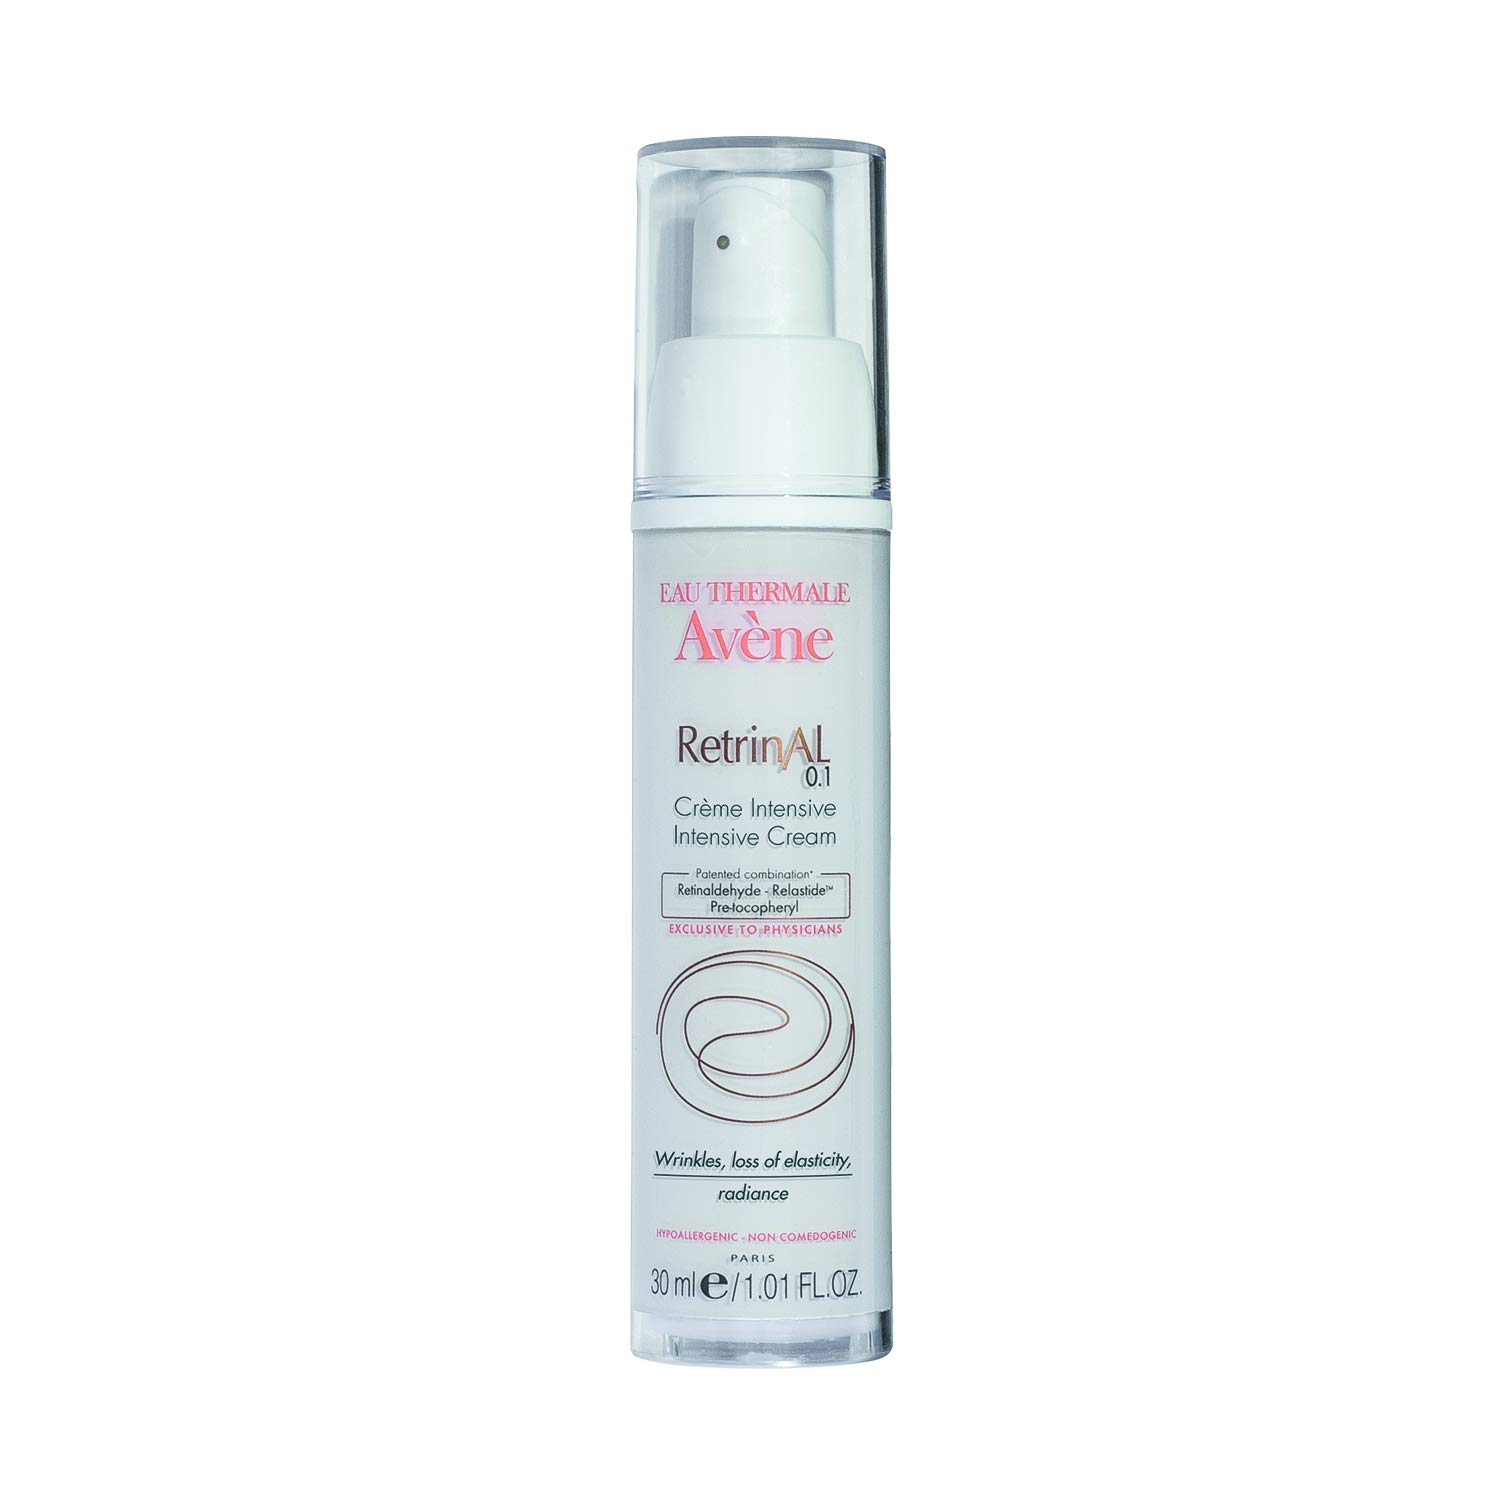 Eau Thermale Avène RetrinAL 0.1 Intensive Cream, Retinaldehyde, Reduce Signs of Aging, Brighten & Rejuvenate Skin, 1.01 oz.